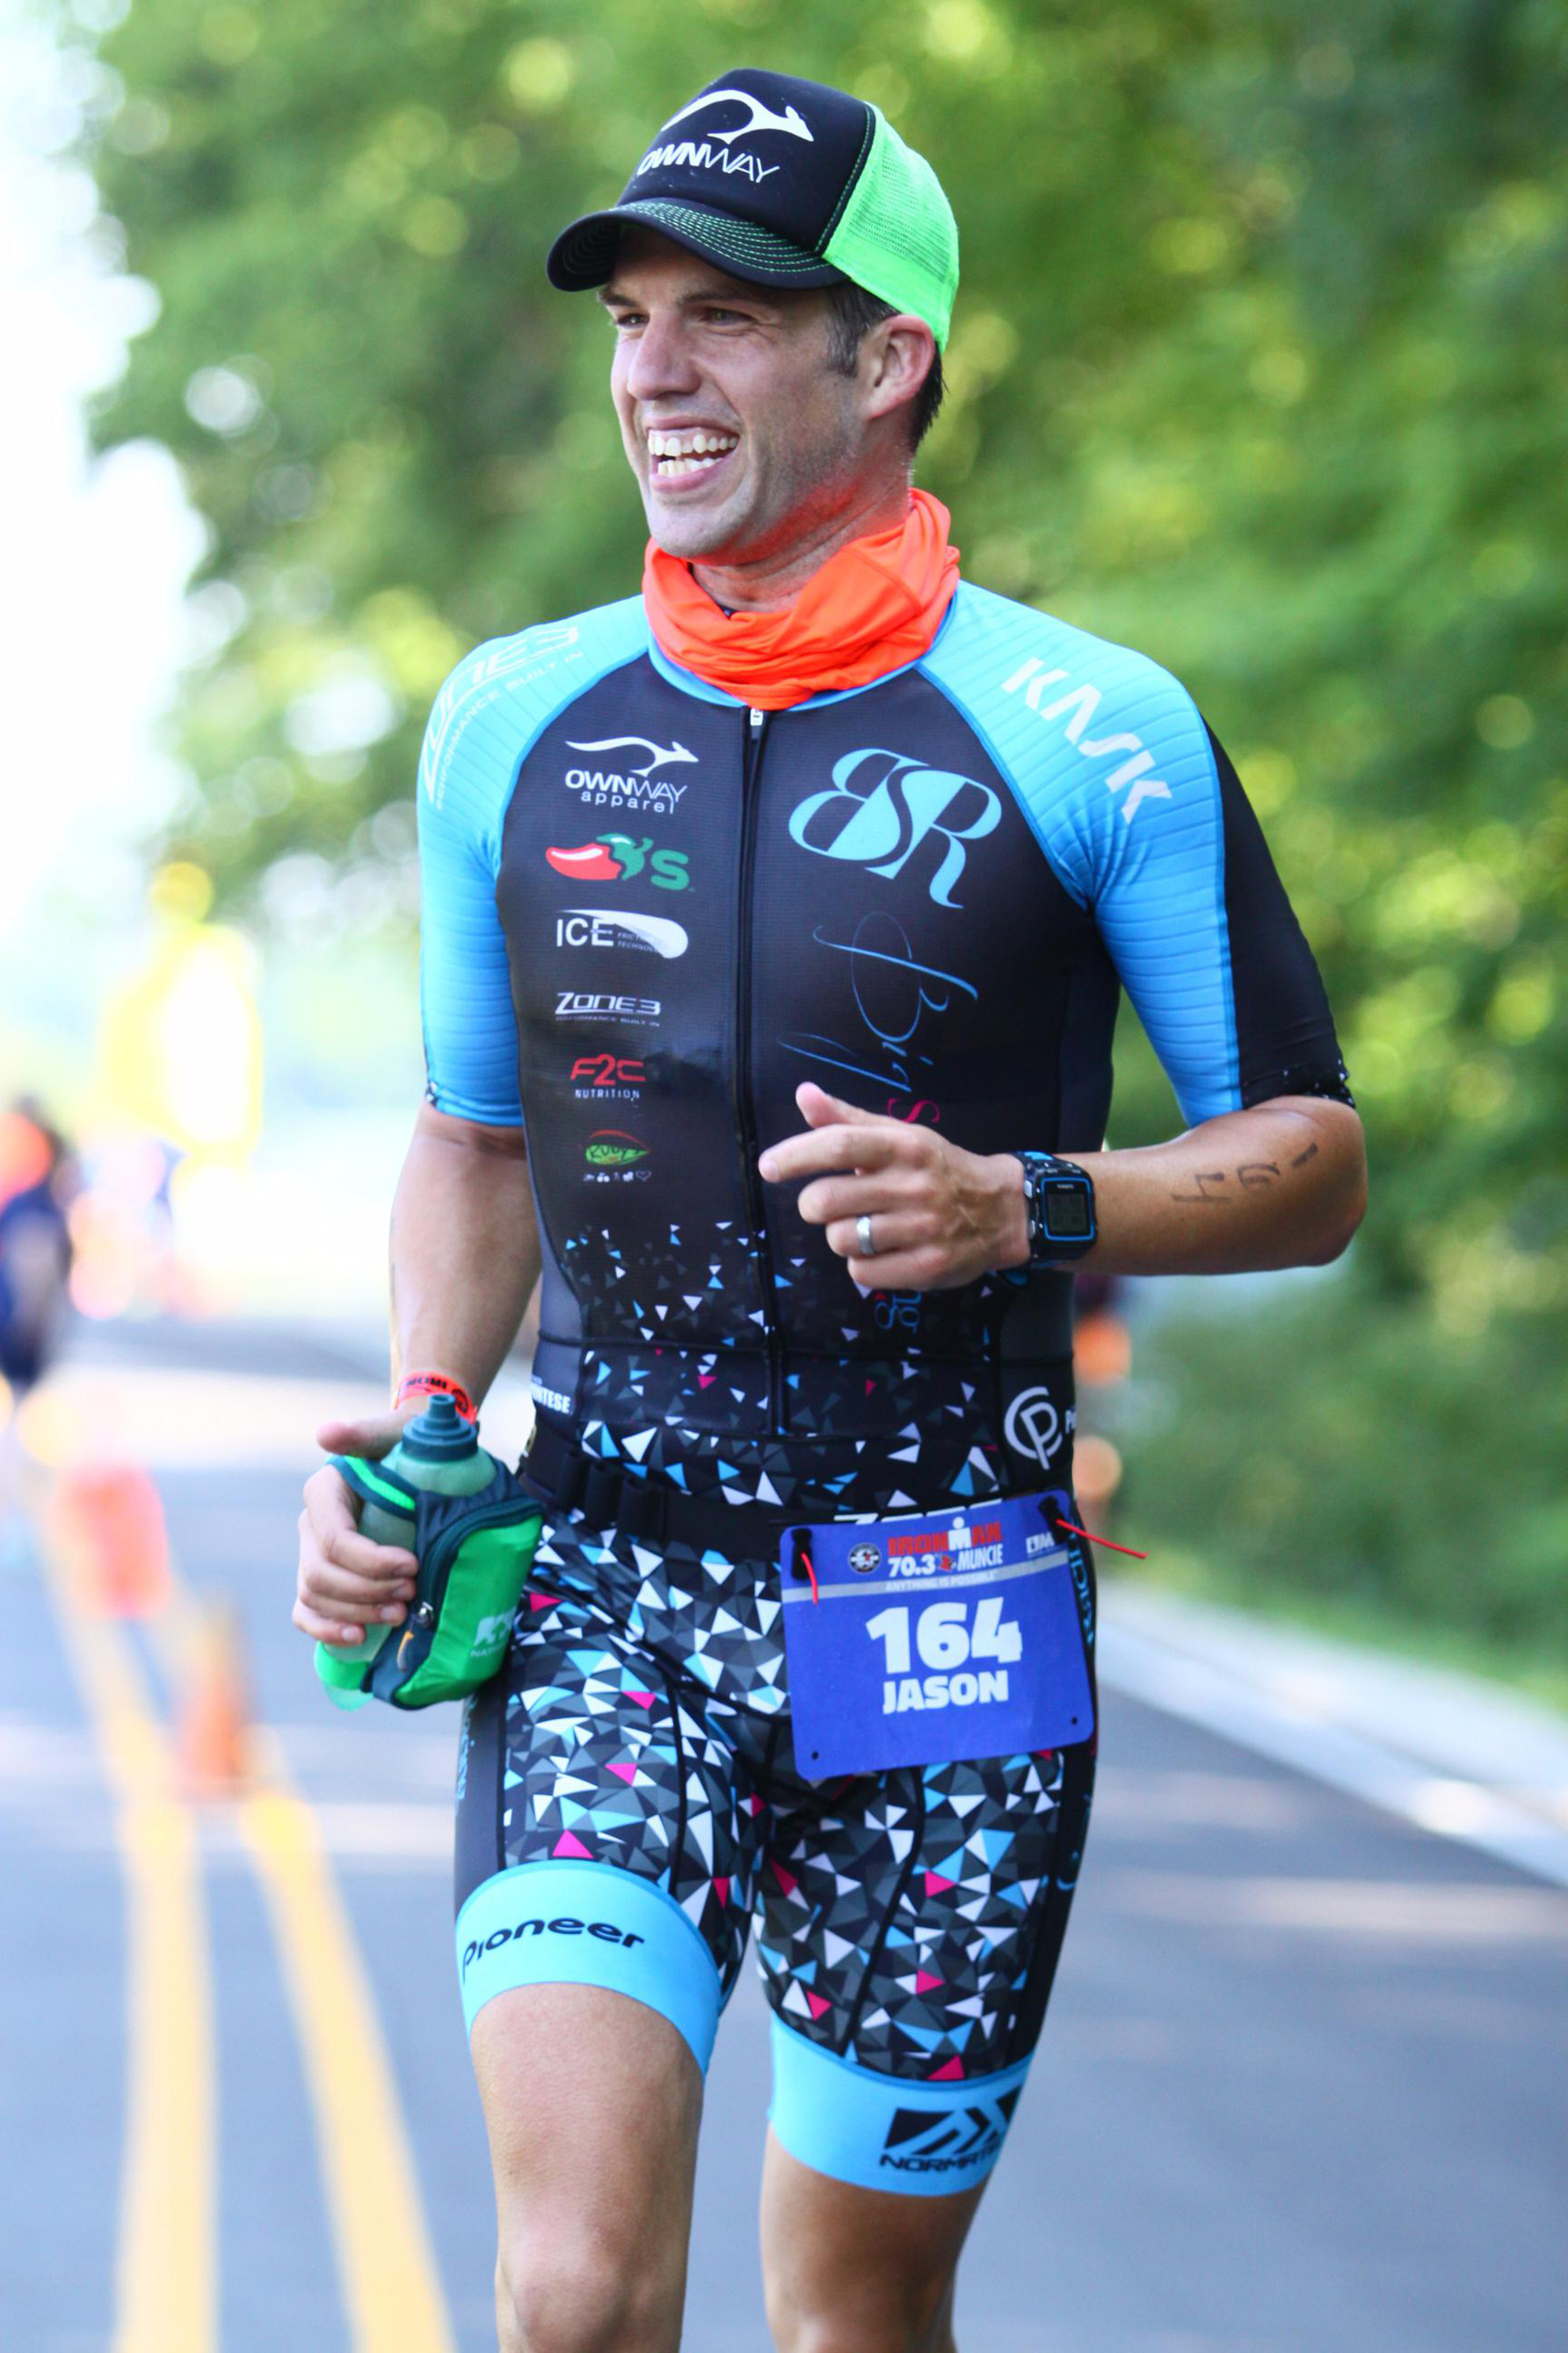 Coach_Terry_Wilson_Pursuit_of_The_Perfect_Race_IRONMAN_Muncie_70.3_Jason_Tucker_3.JPG